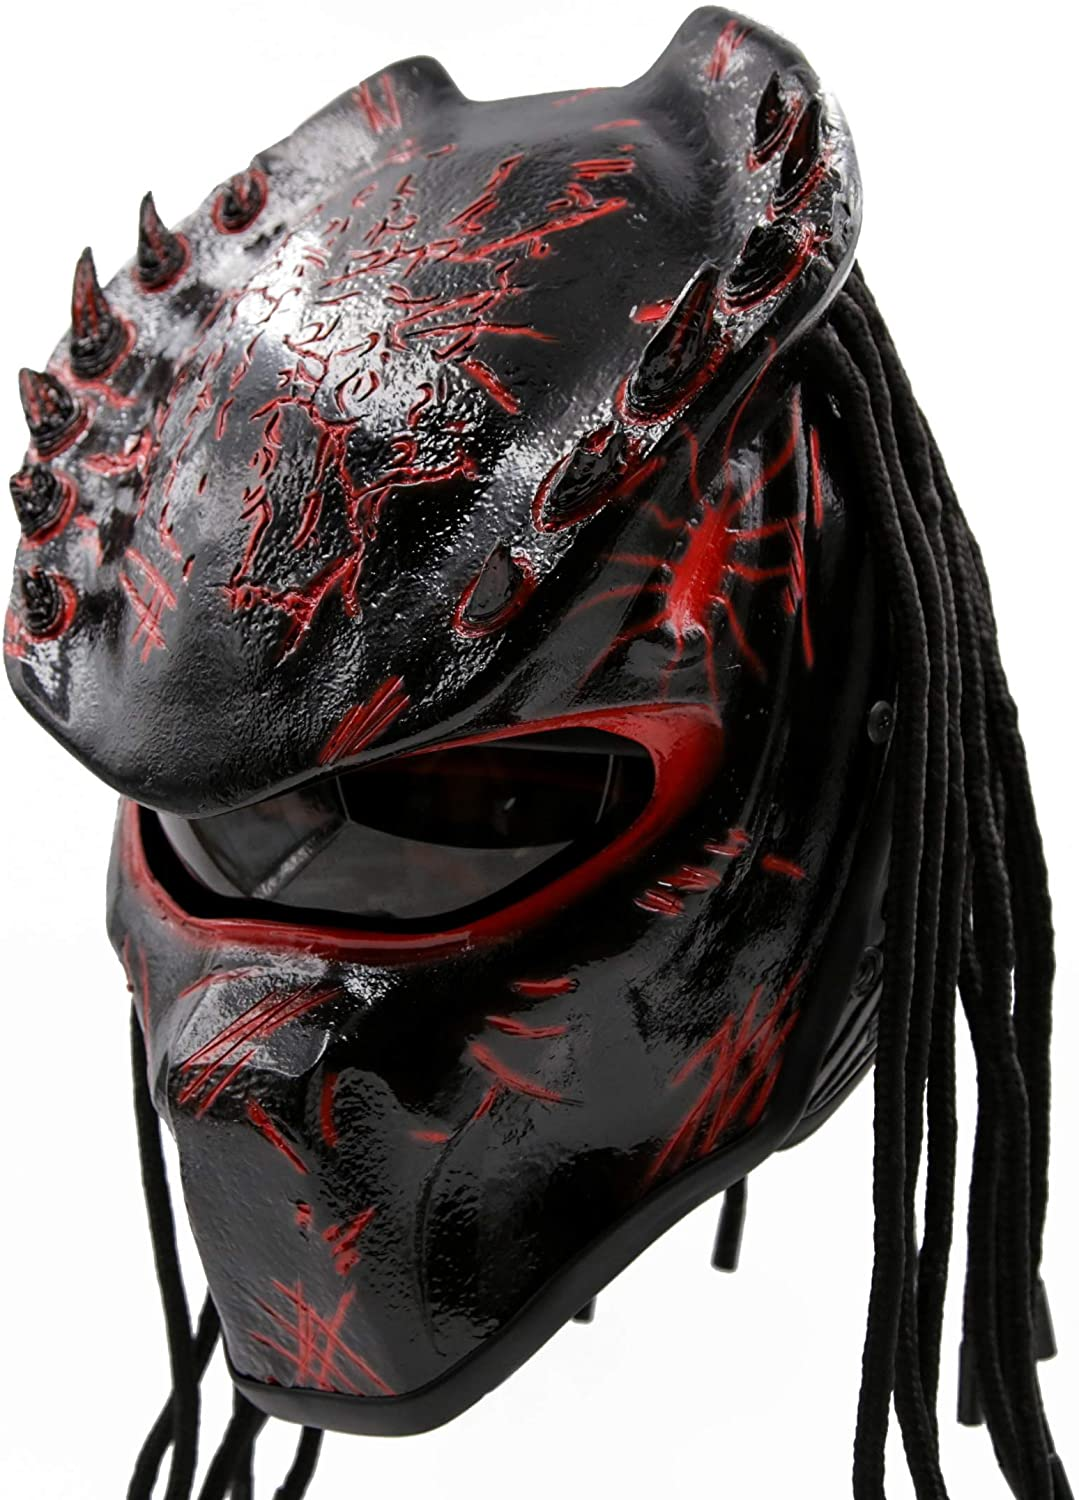 Predator Motorcycle Helmet - DOT Approved - Unisex - Red Spiked